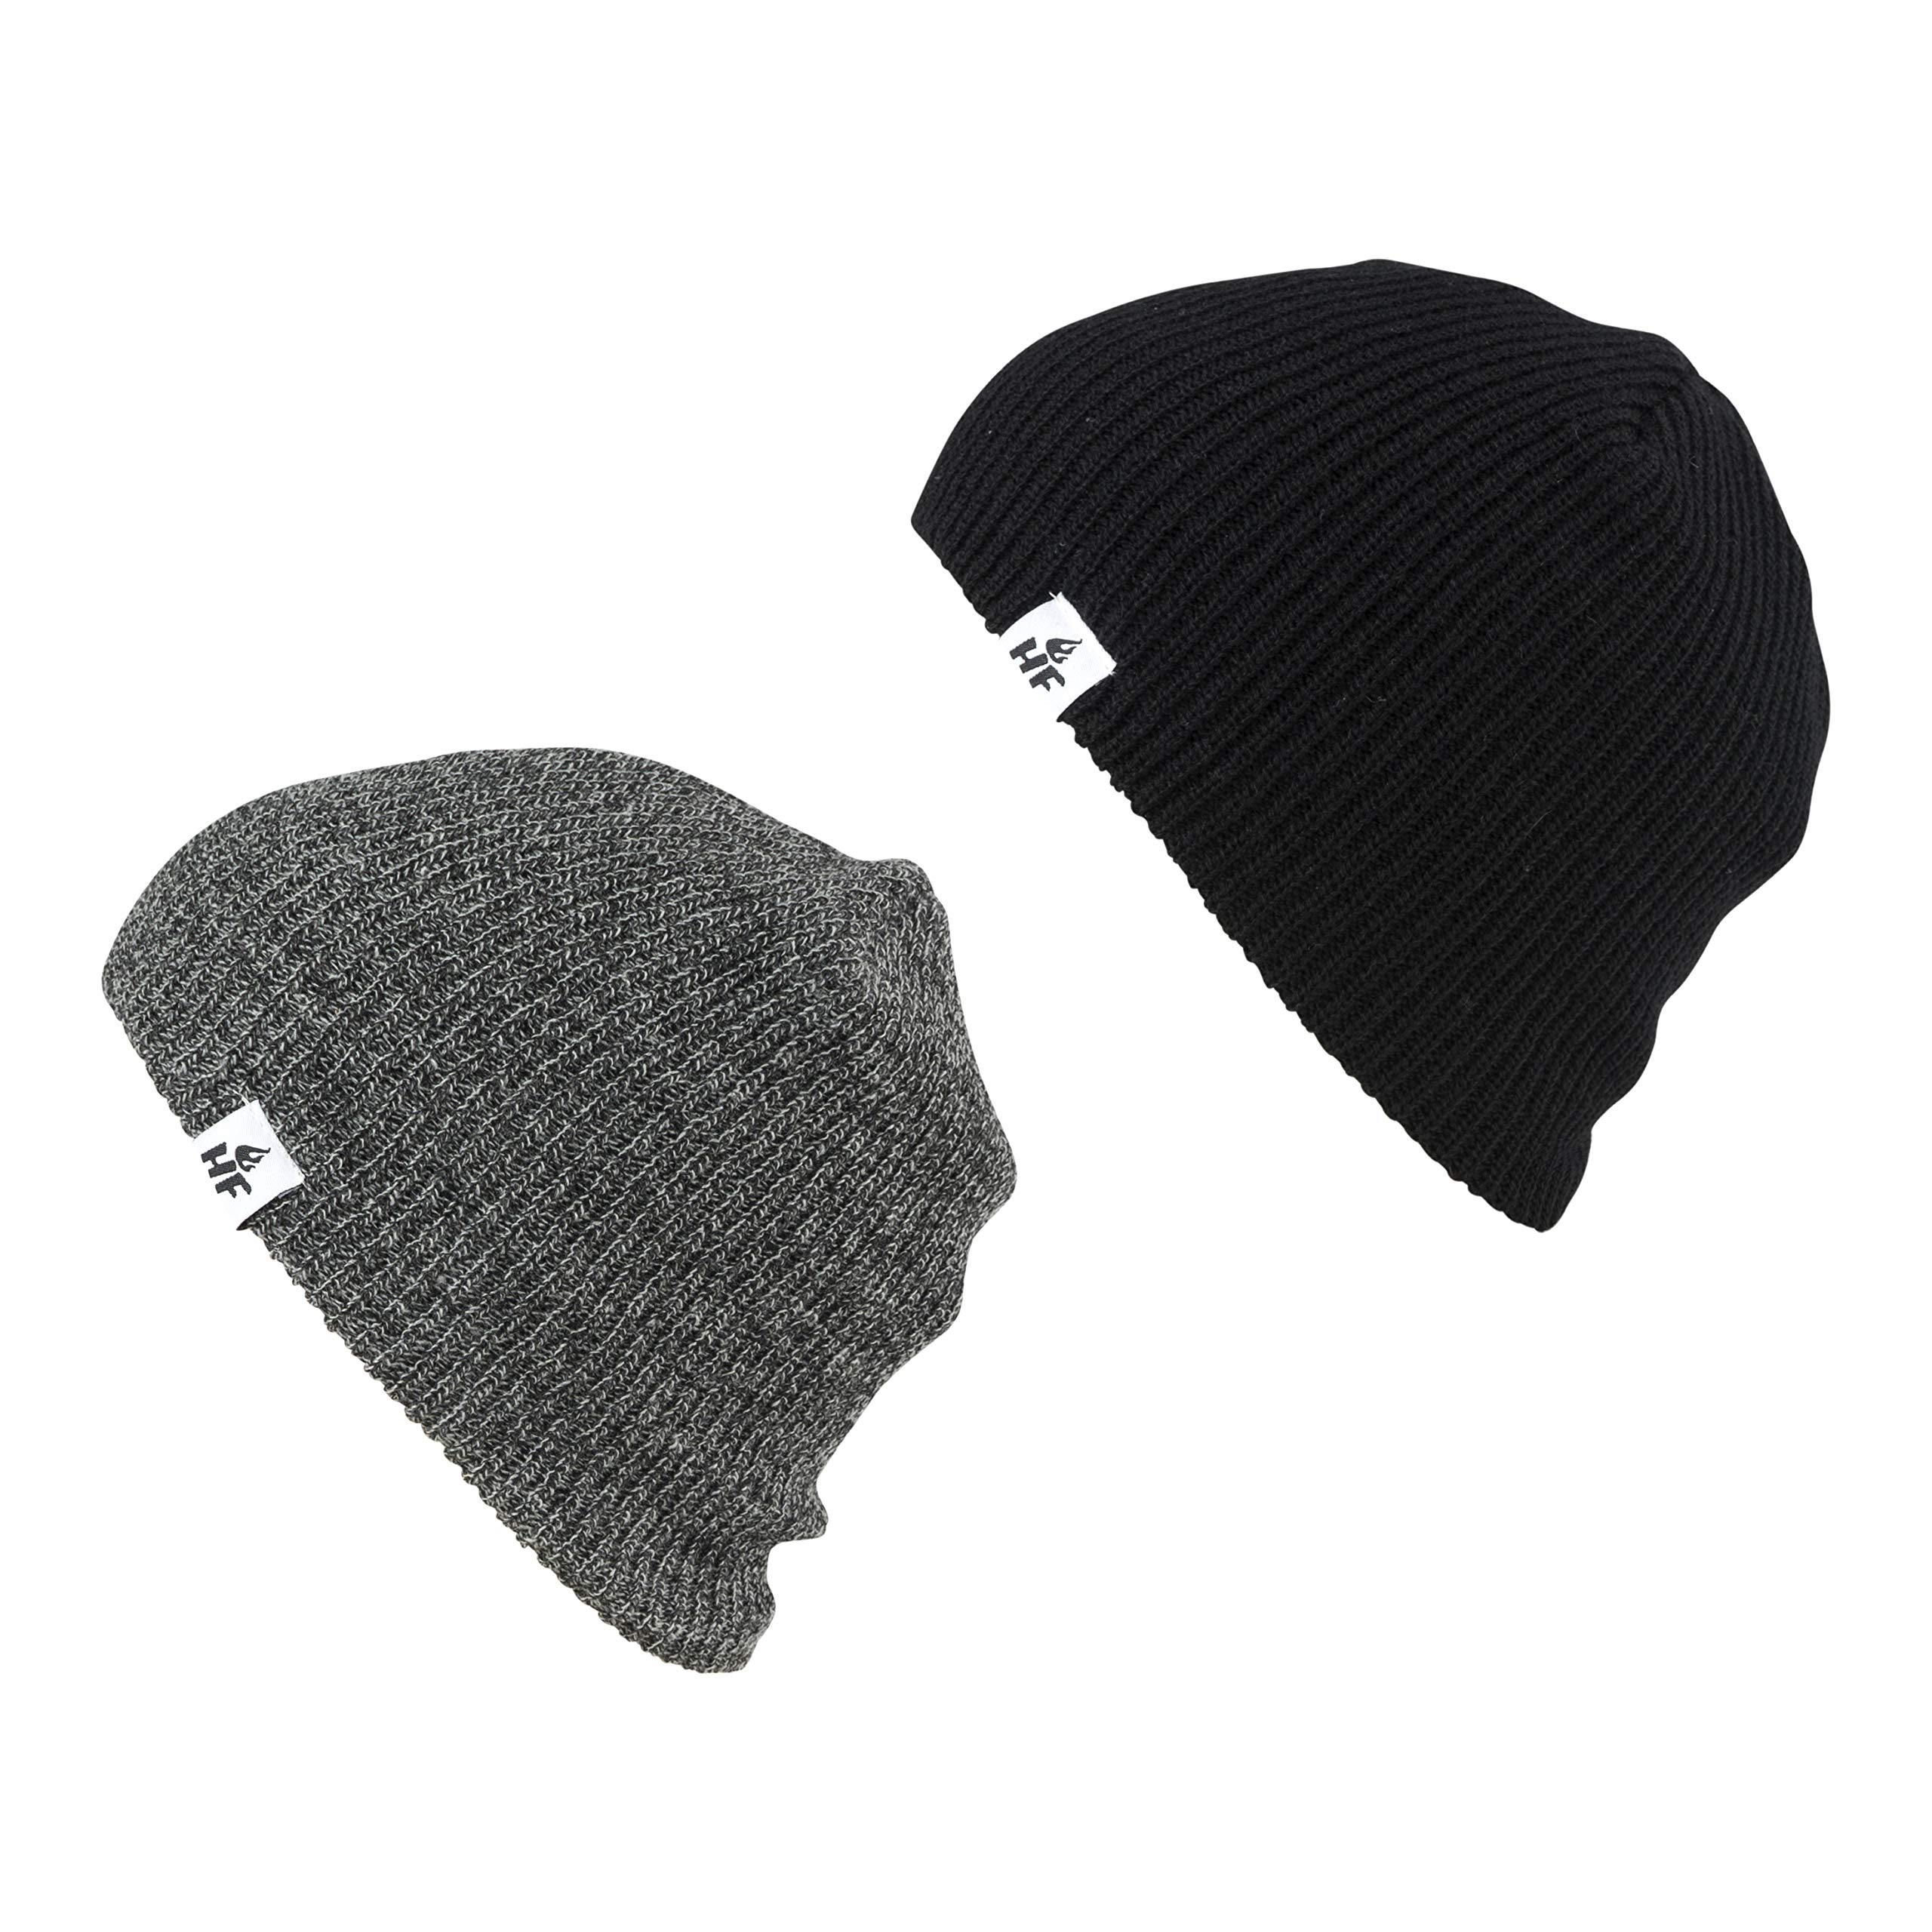 HOT FEET Winter Beanies | Warm Knit Men's and Women's Snow Hats/Caps | Unisex Pack/Set of 2 - (Heather Gray/Black)